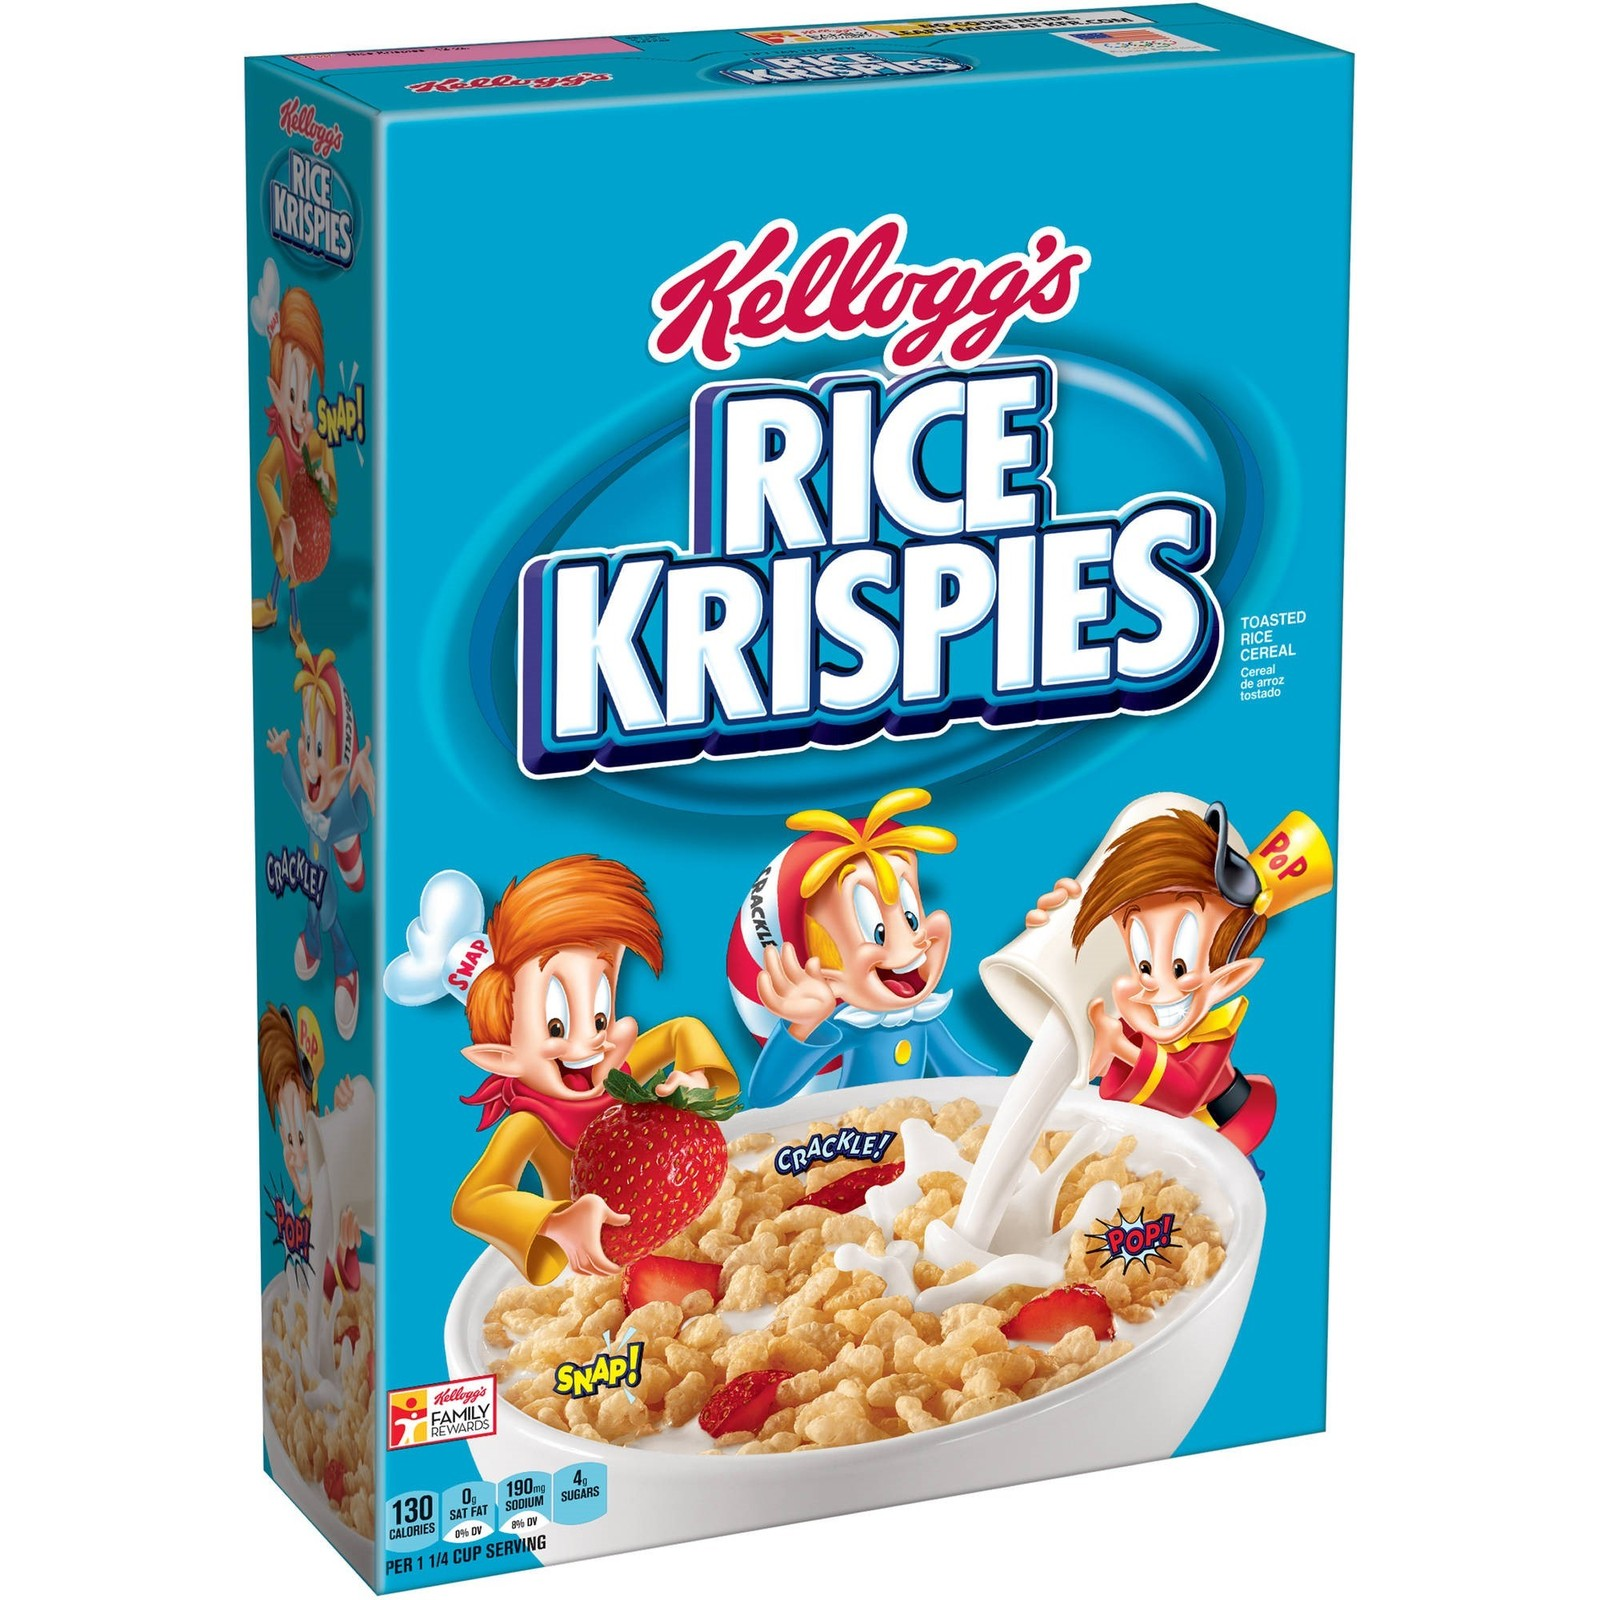 Primary image for Kellogg's Rice Krispies, Breakfast Cereal, Original, 12 Oz